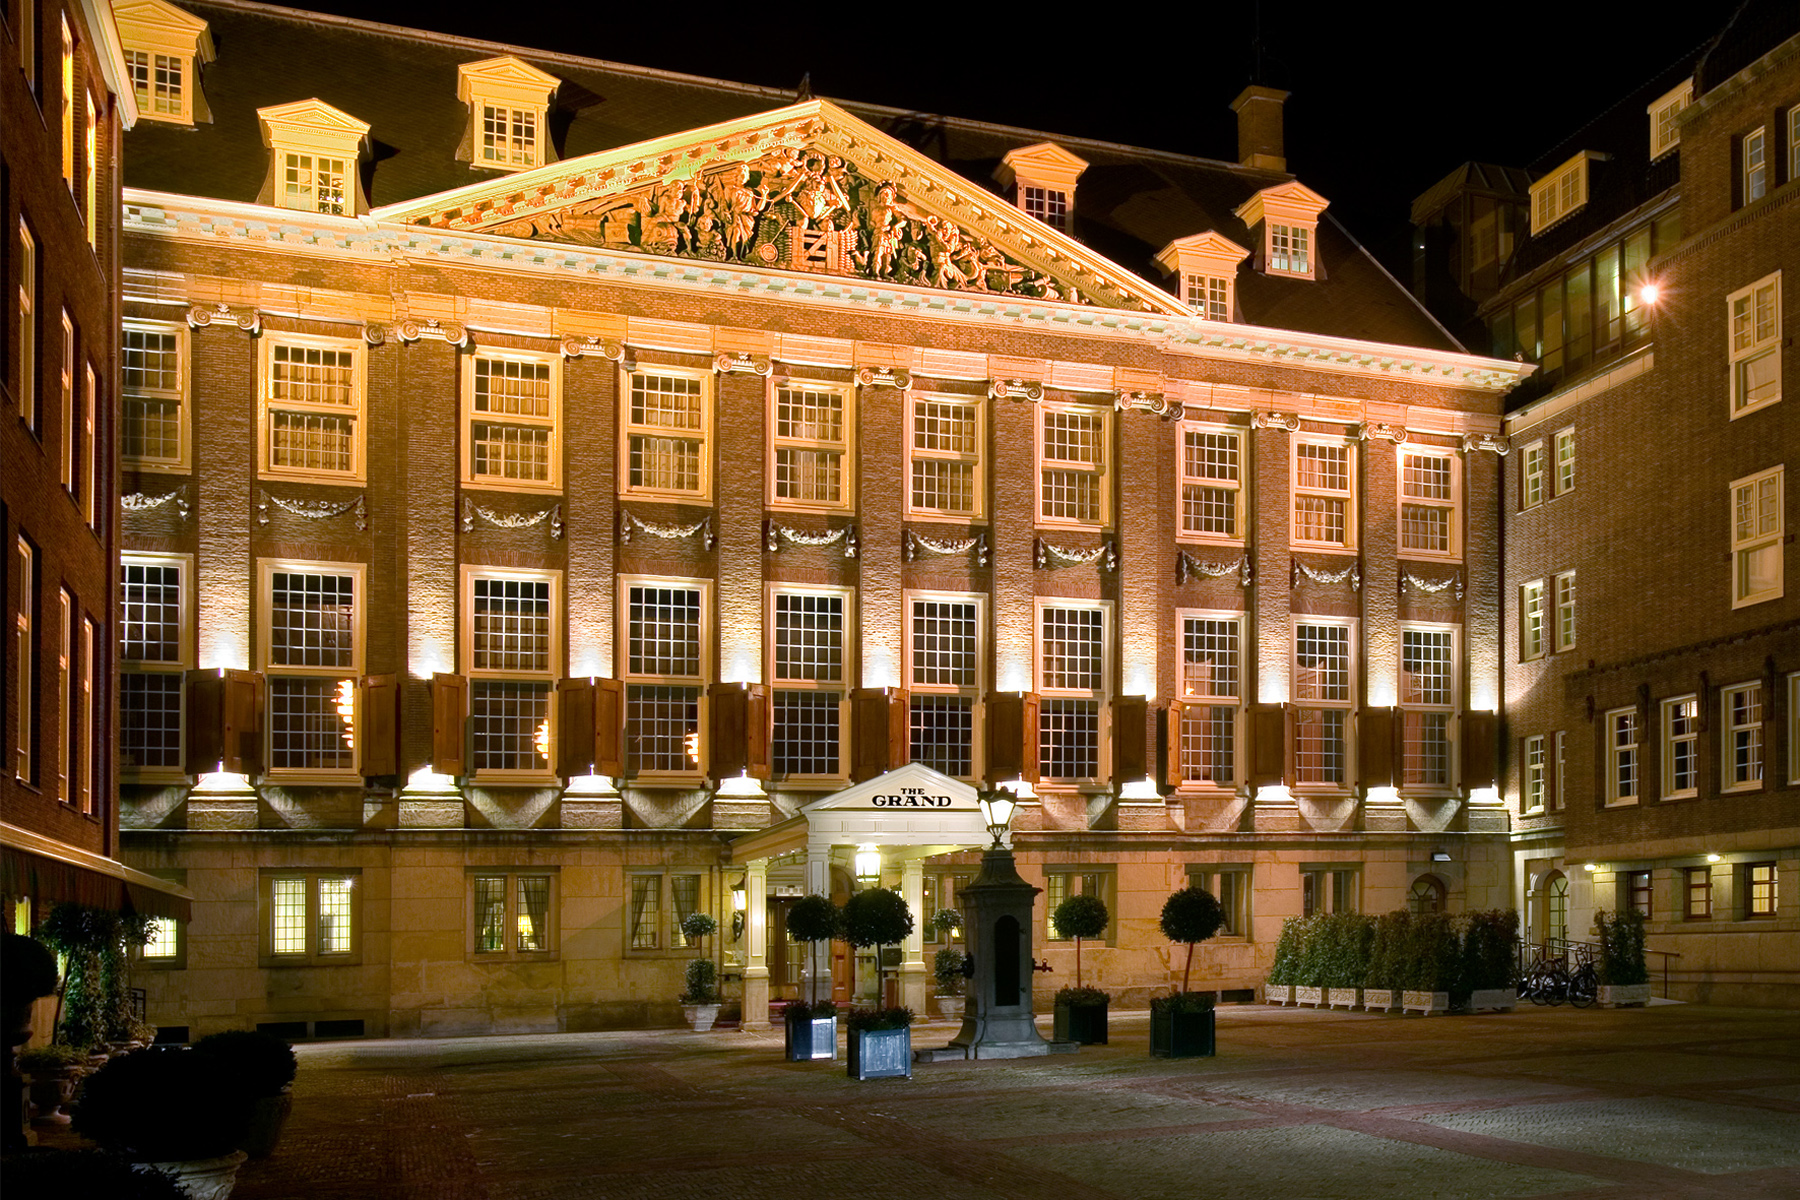 The grand hotel in amsterdam de architect for Amsterdam hotel